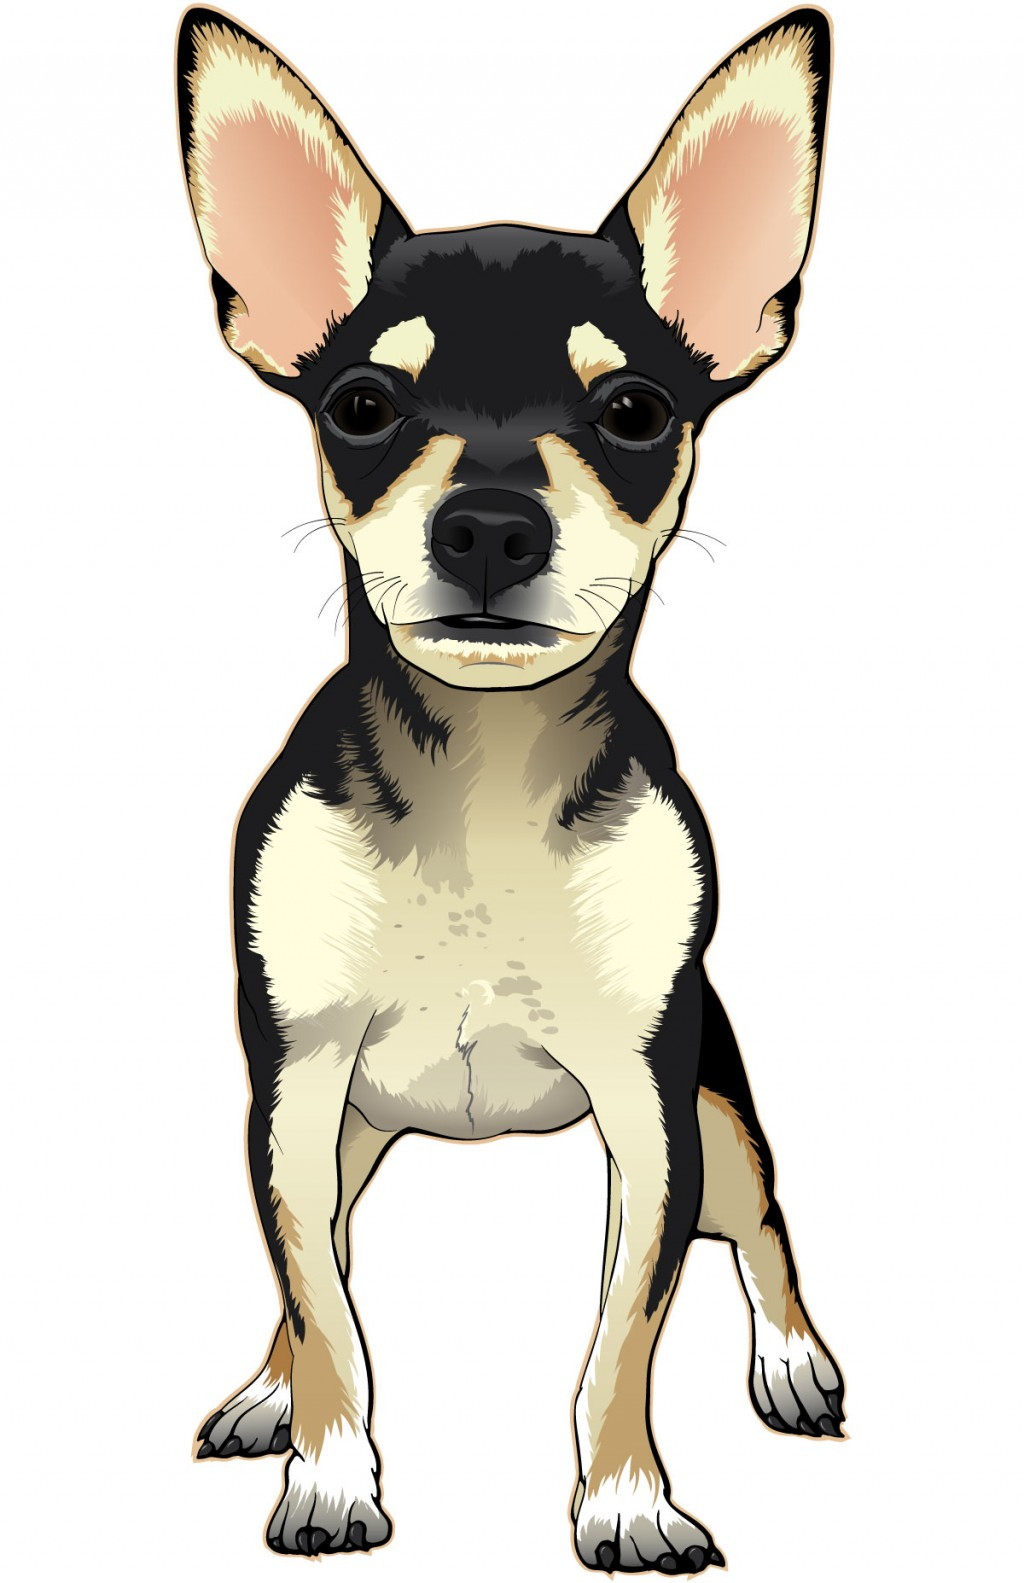 Color illustration of a black and tan chihuahua puppy.